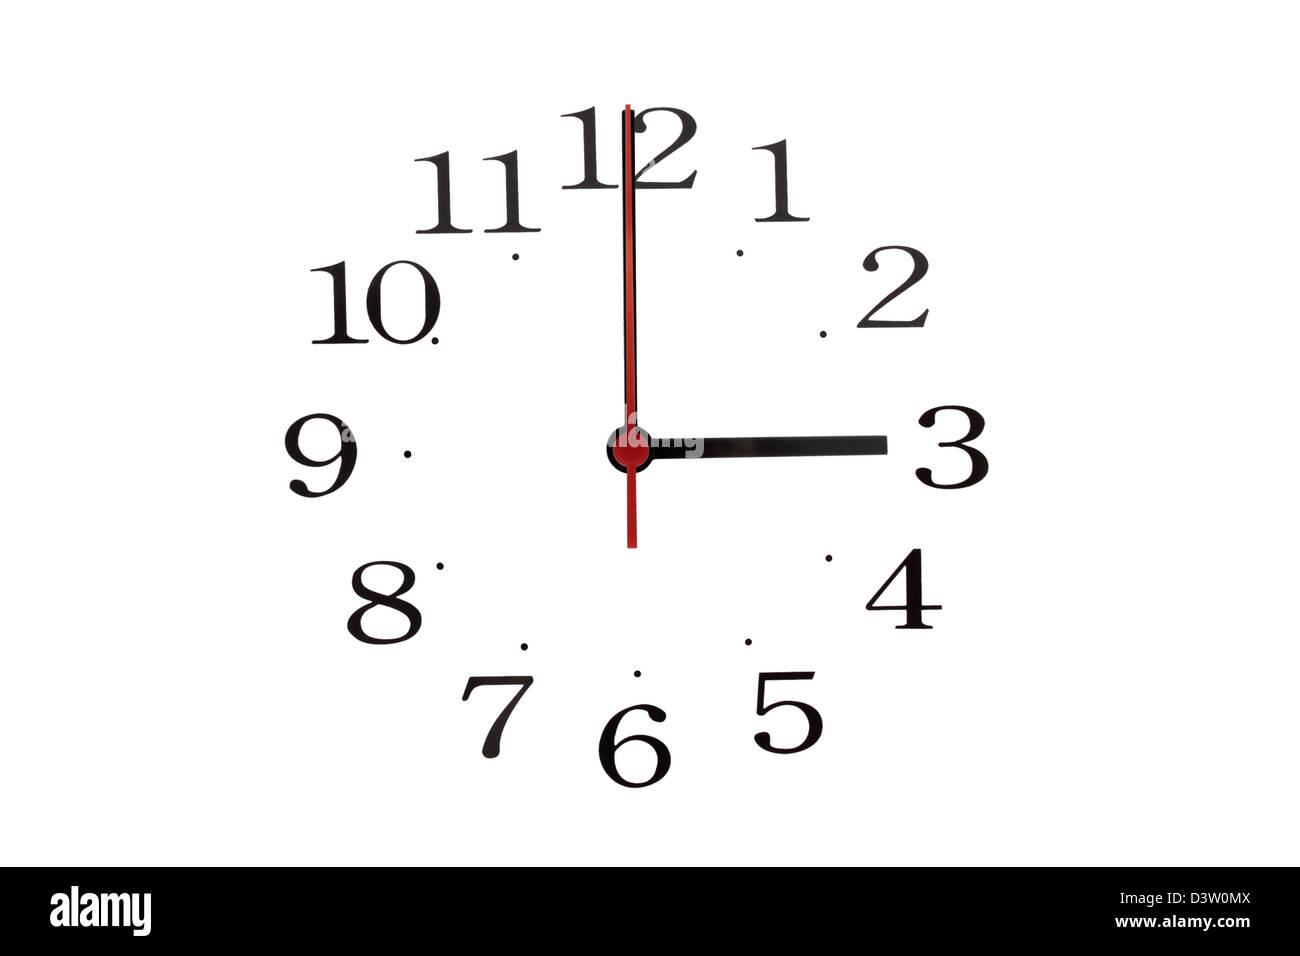 Just the hands and numbers from a clock reading 03:00 - Stock Image